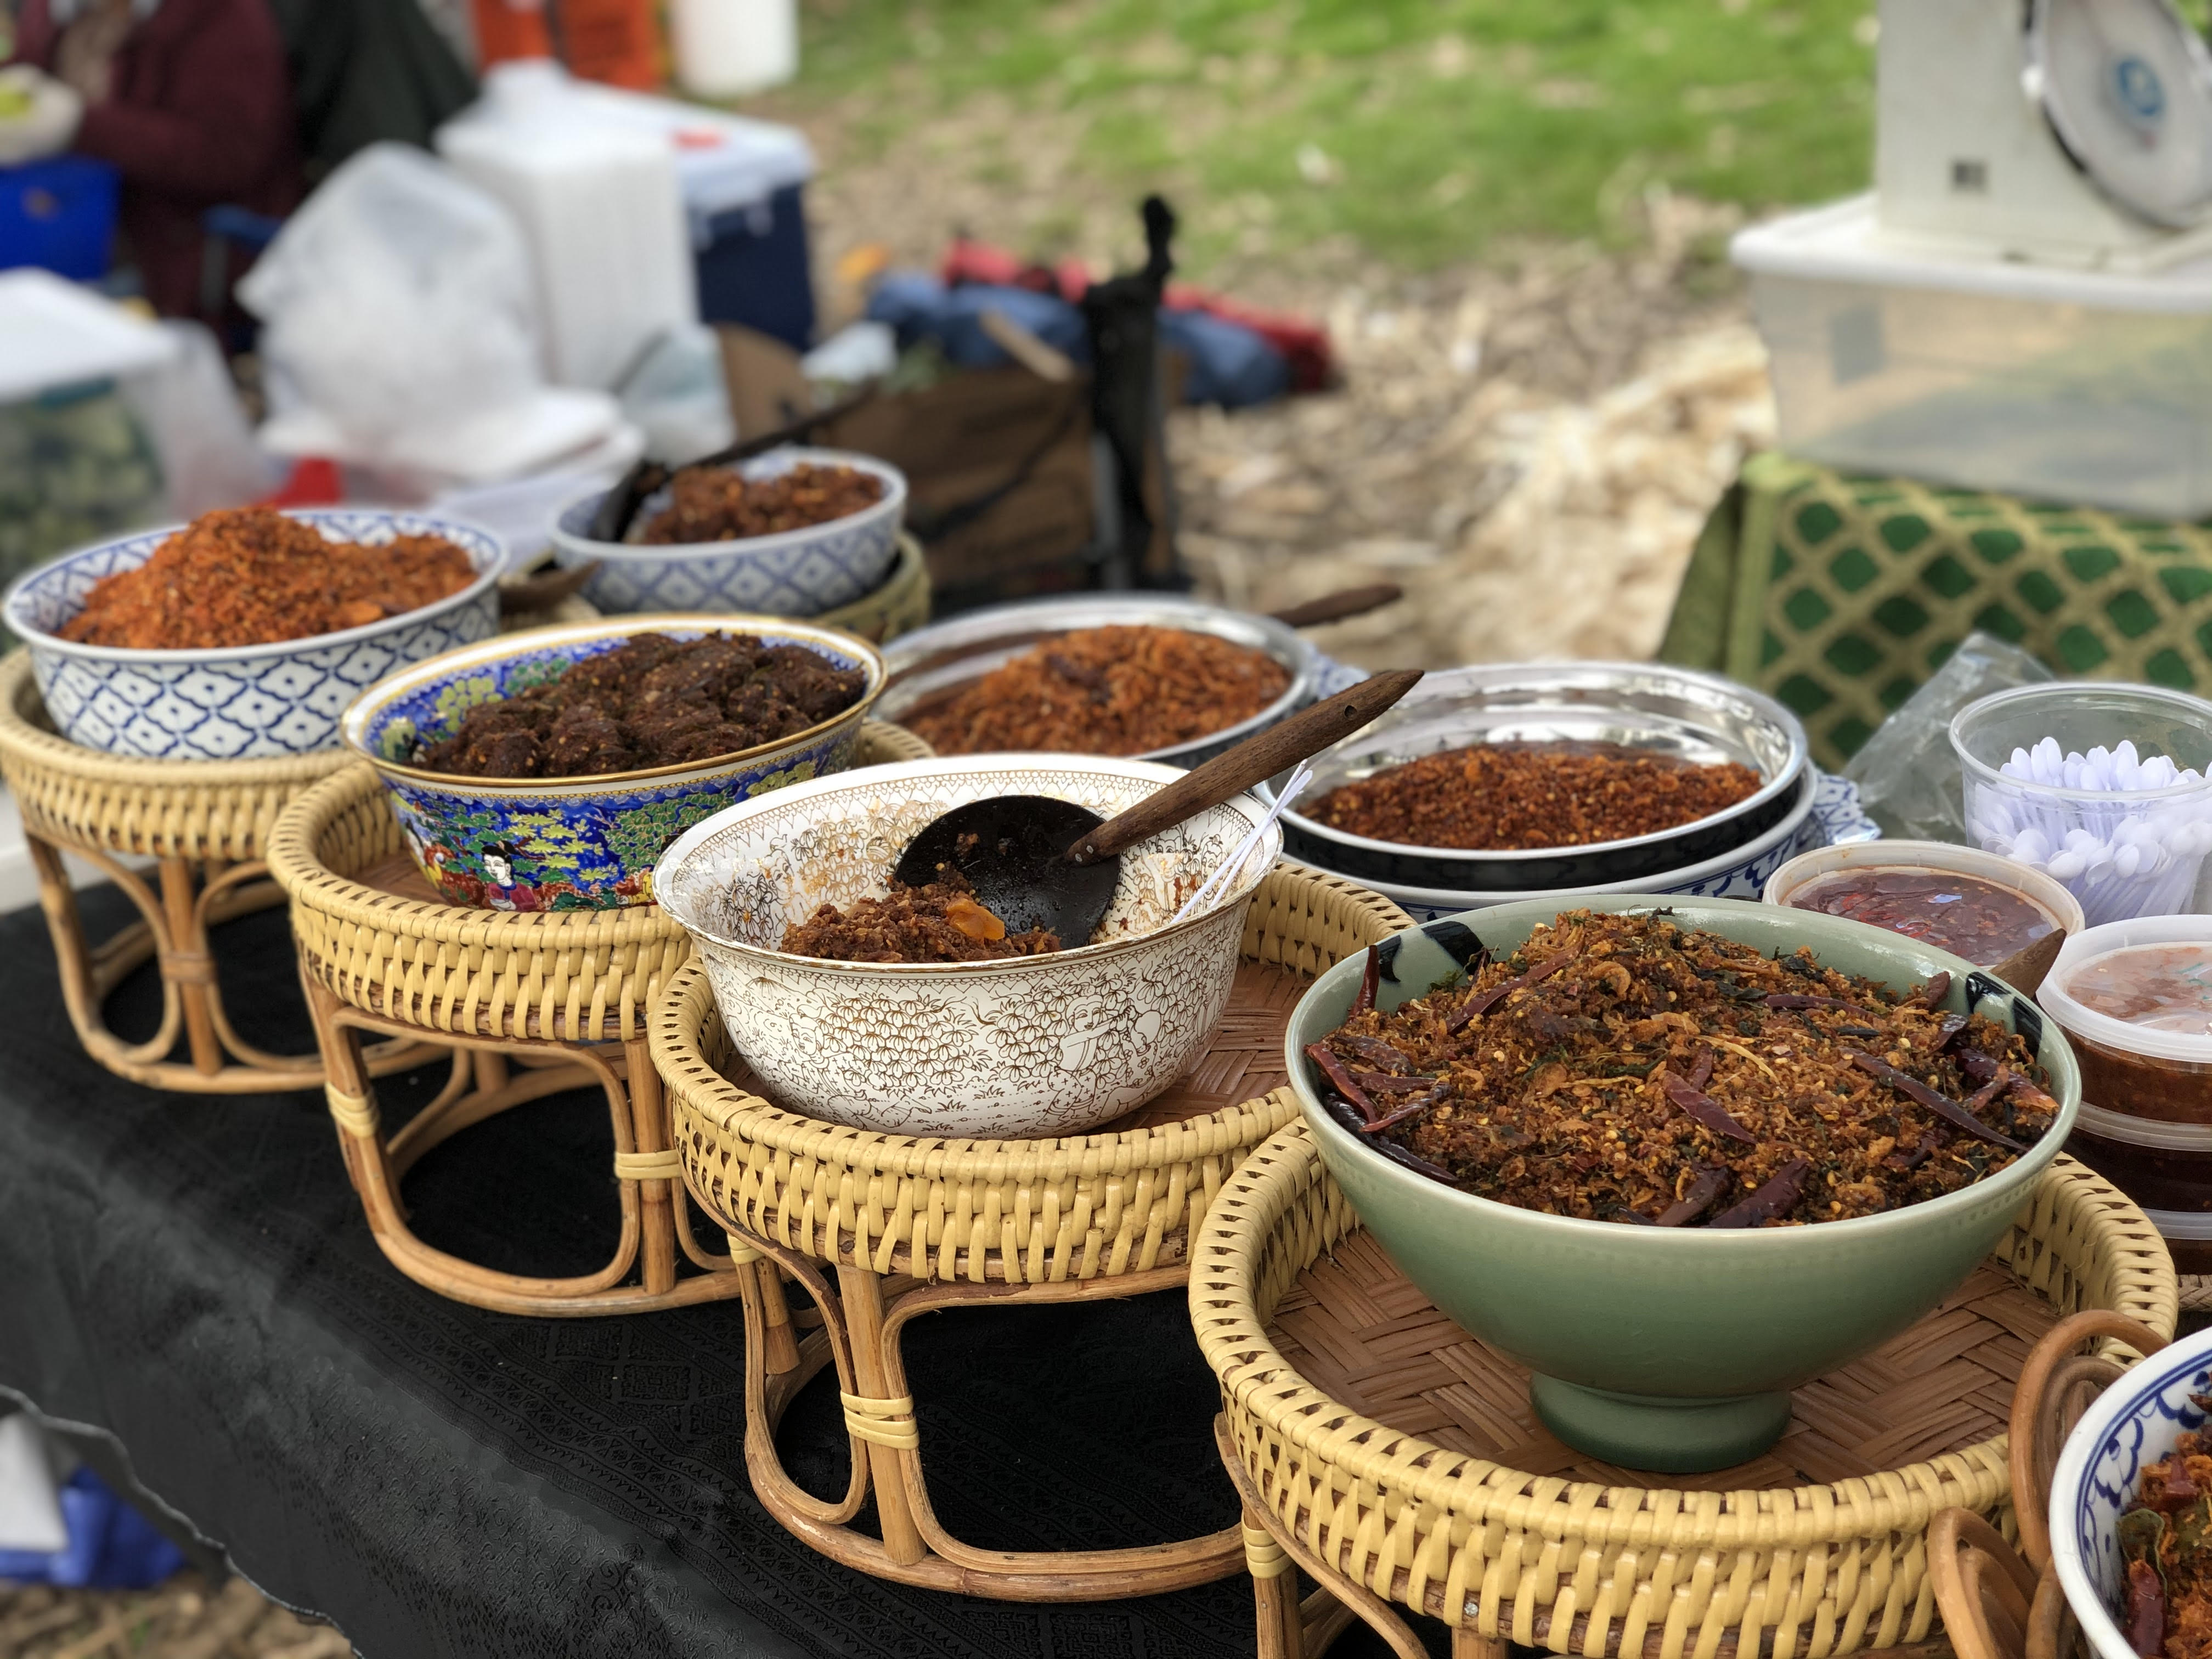 dishes of food set up at FDR park